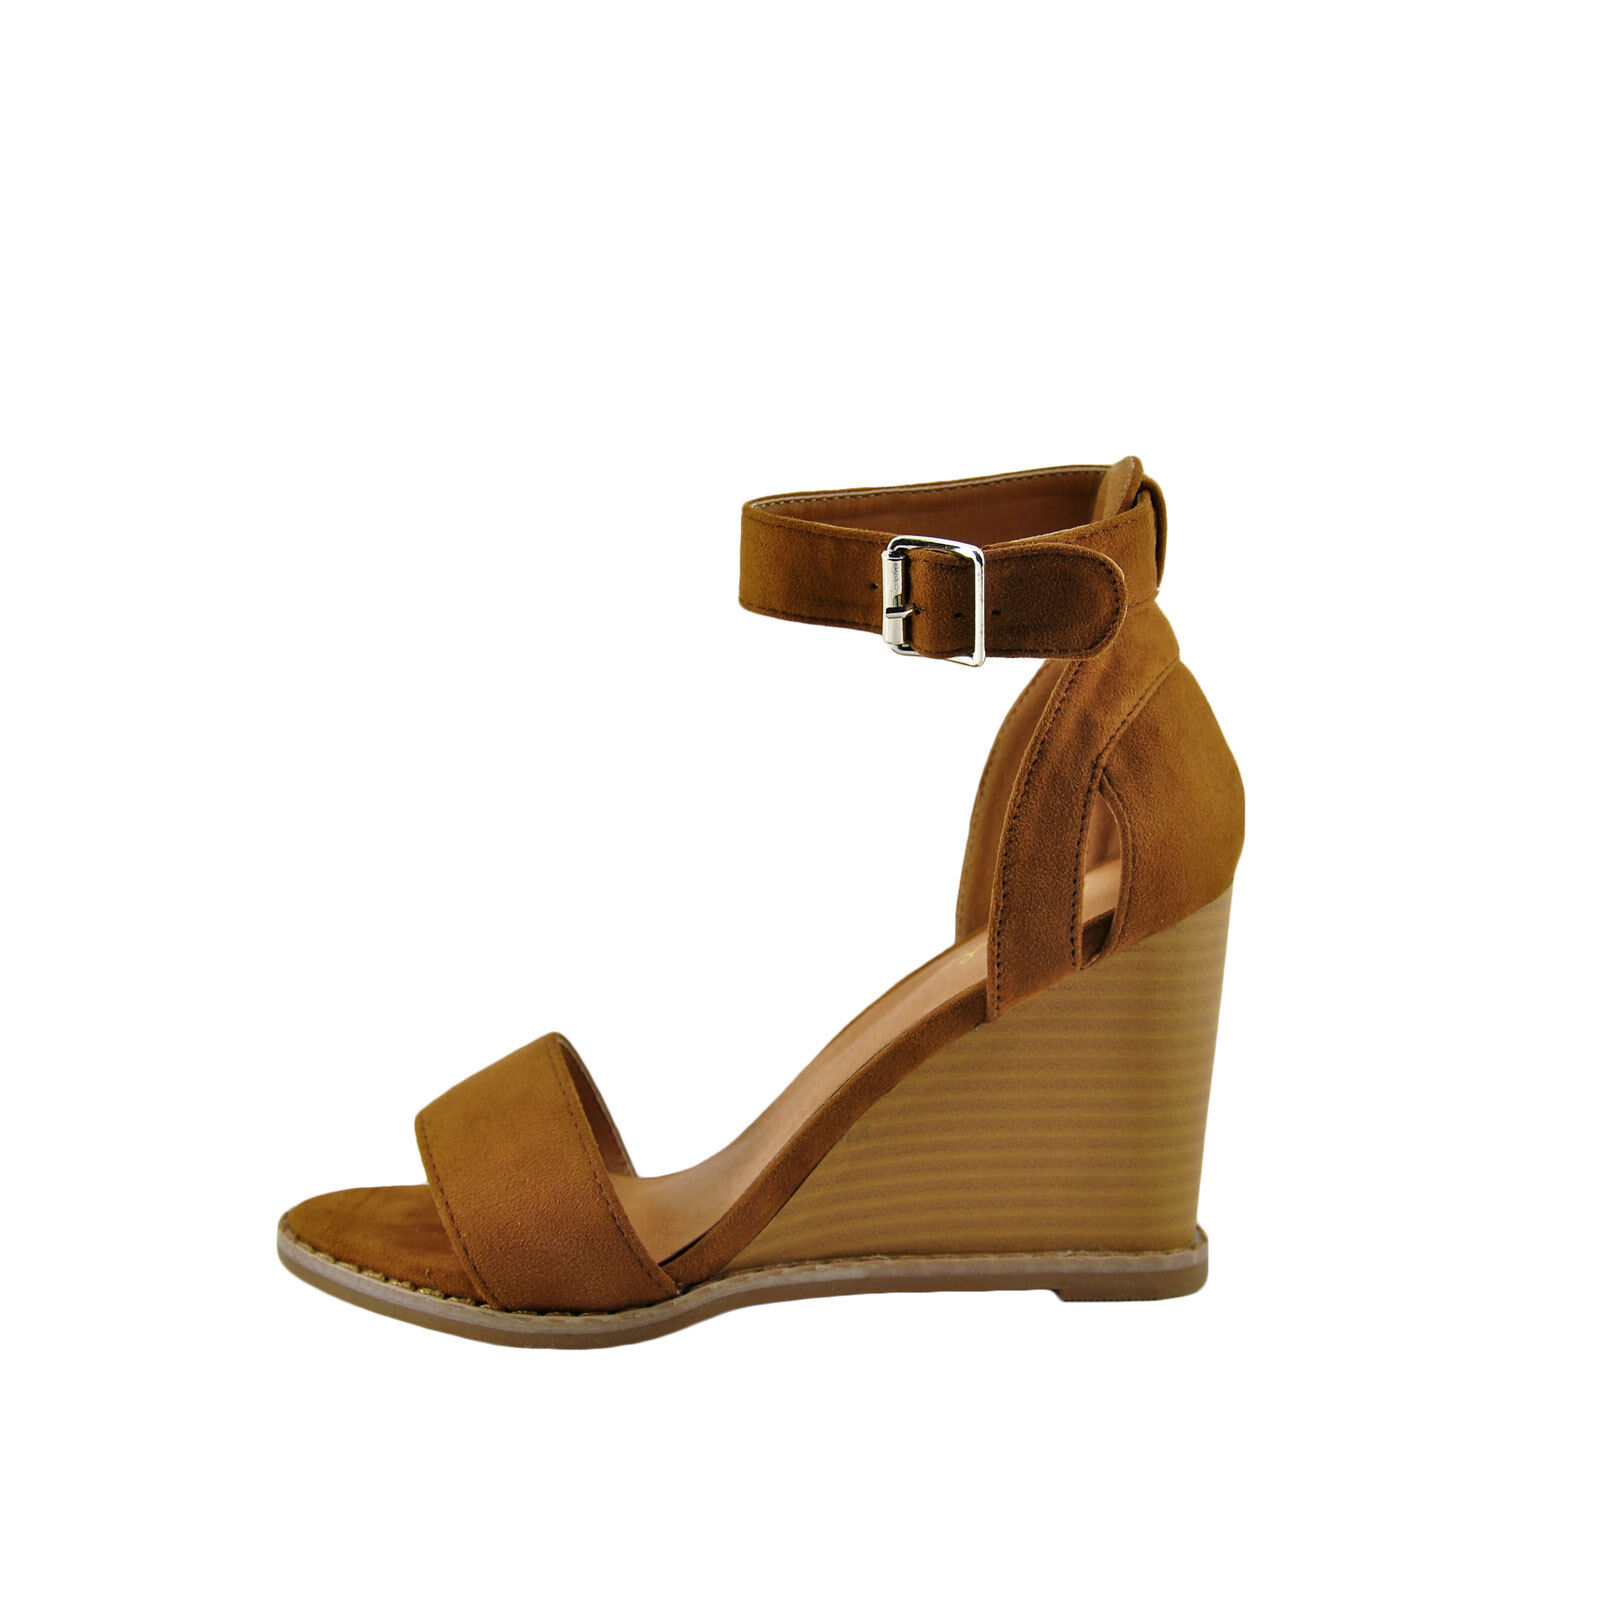 Qupid Finley 01 Camel Women's Open Toe Ankle Strap Stacked W